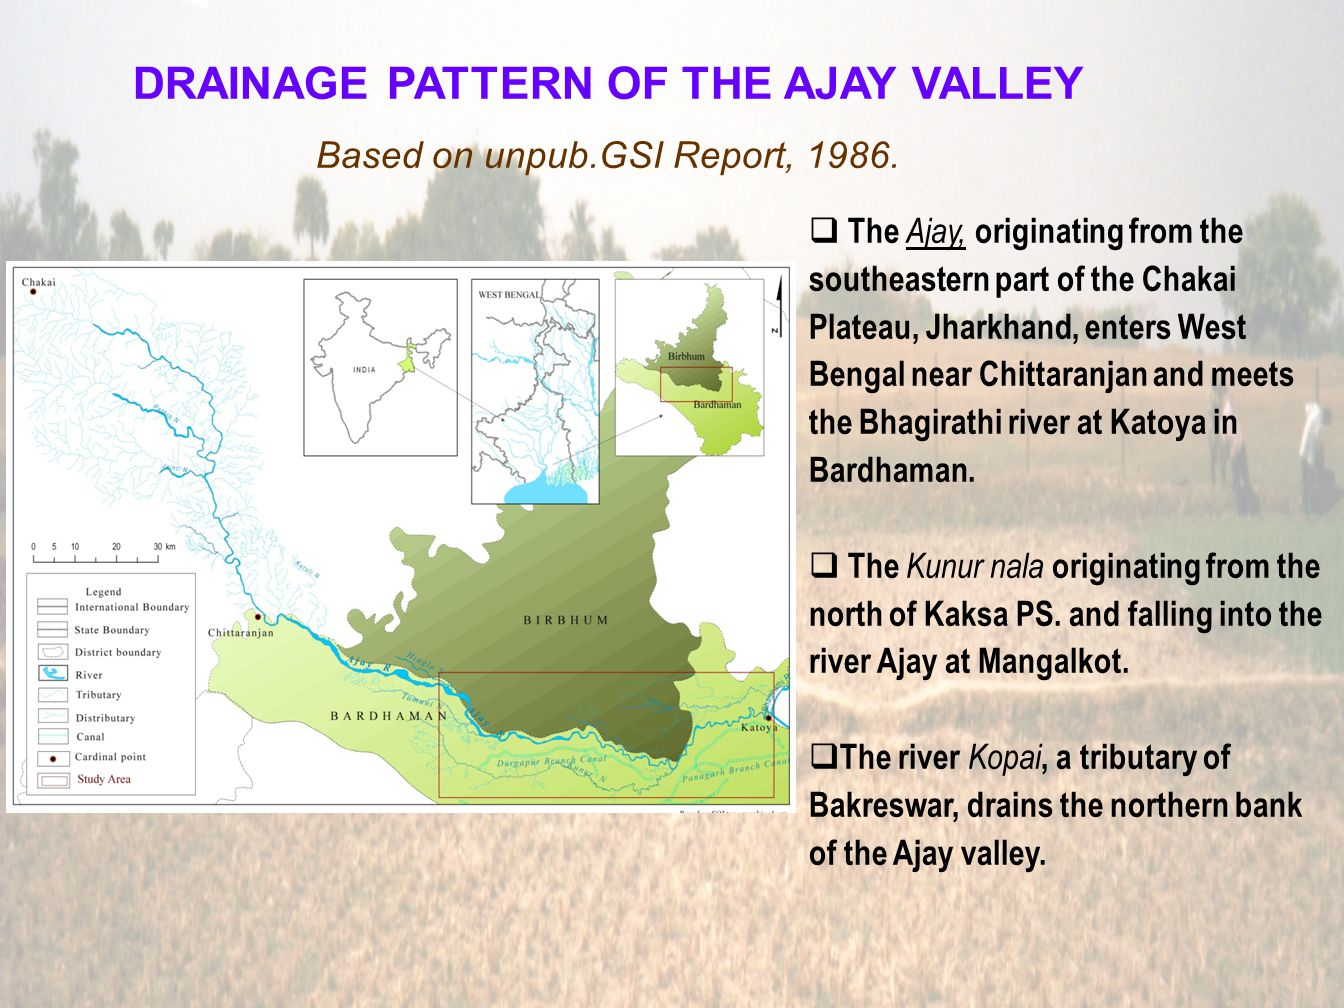 DRAINAGE PATTERN OF THE AJAY VALLEY Based on unpub.GSI Report, 1986.